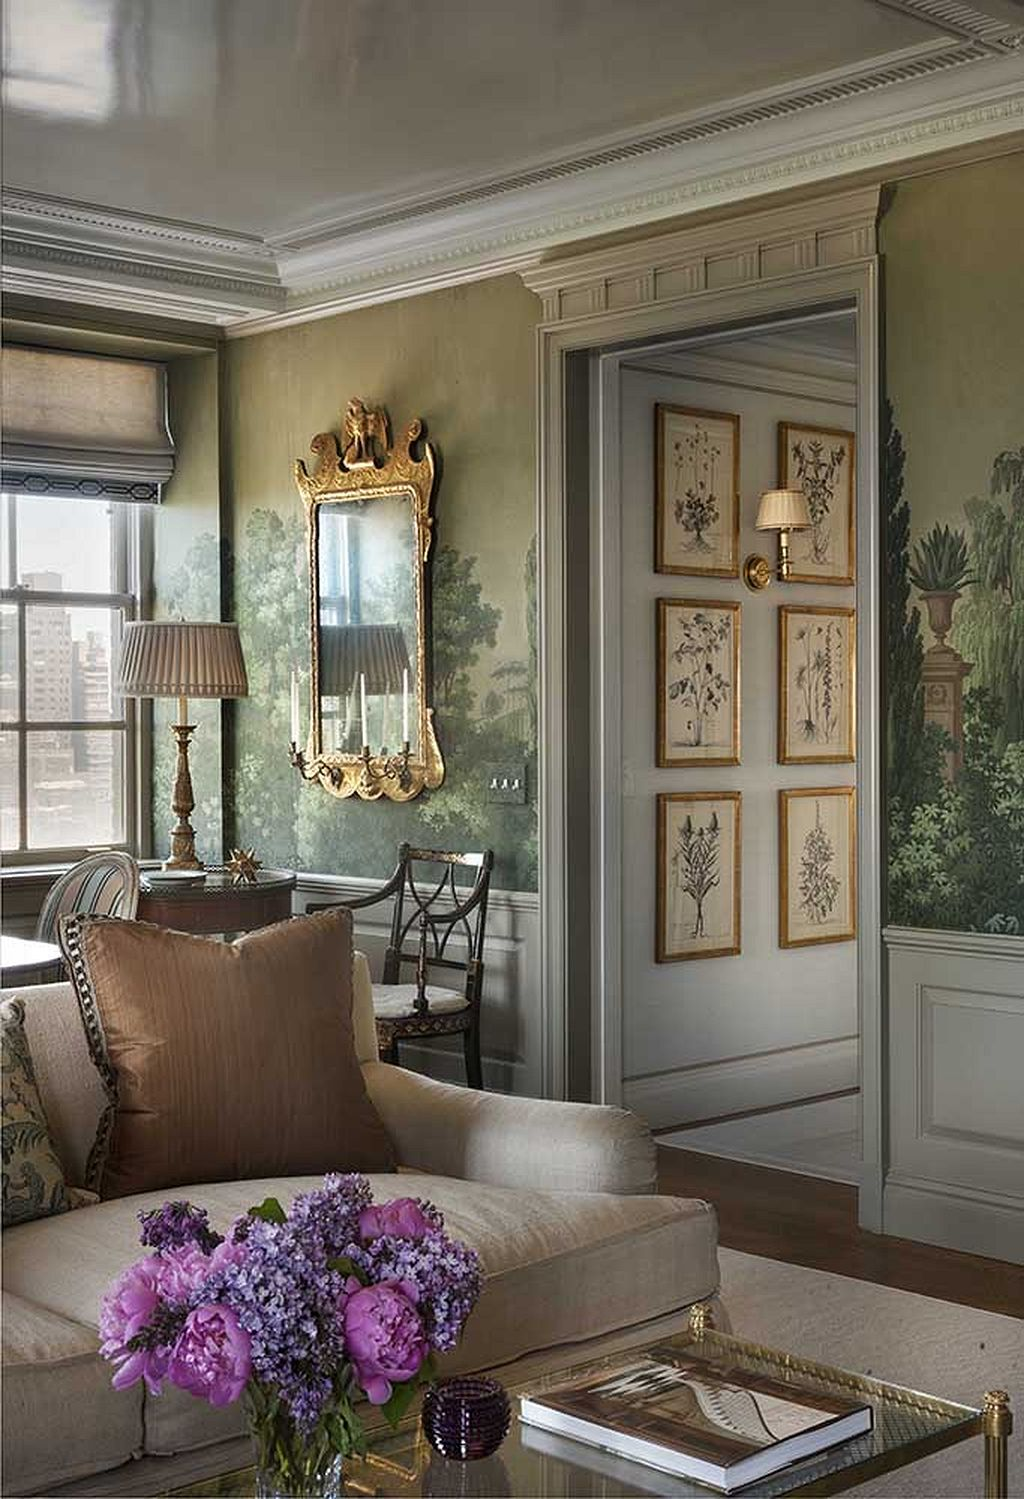 Best 18 Images Of English Country Home Decor Ideas Decor This Month